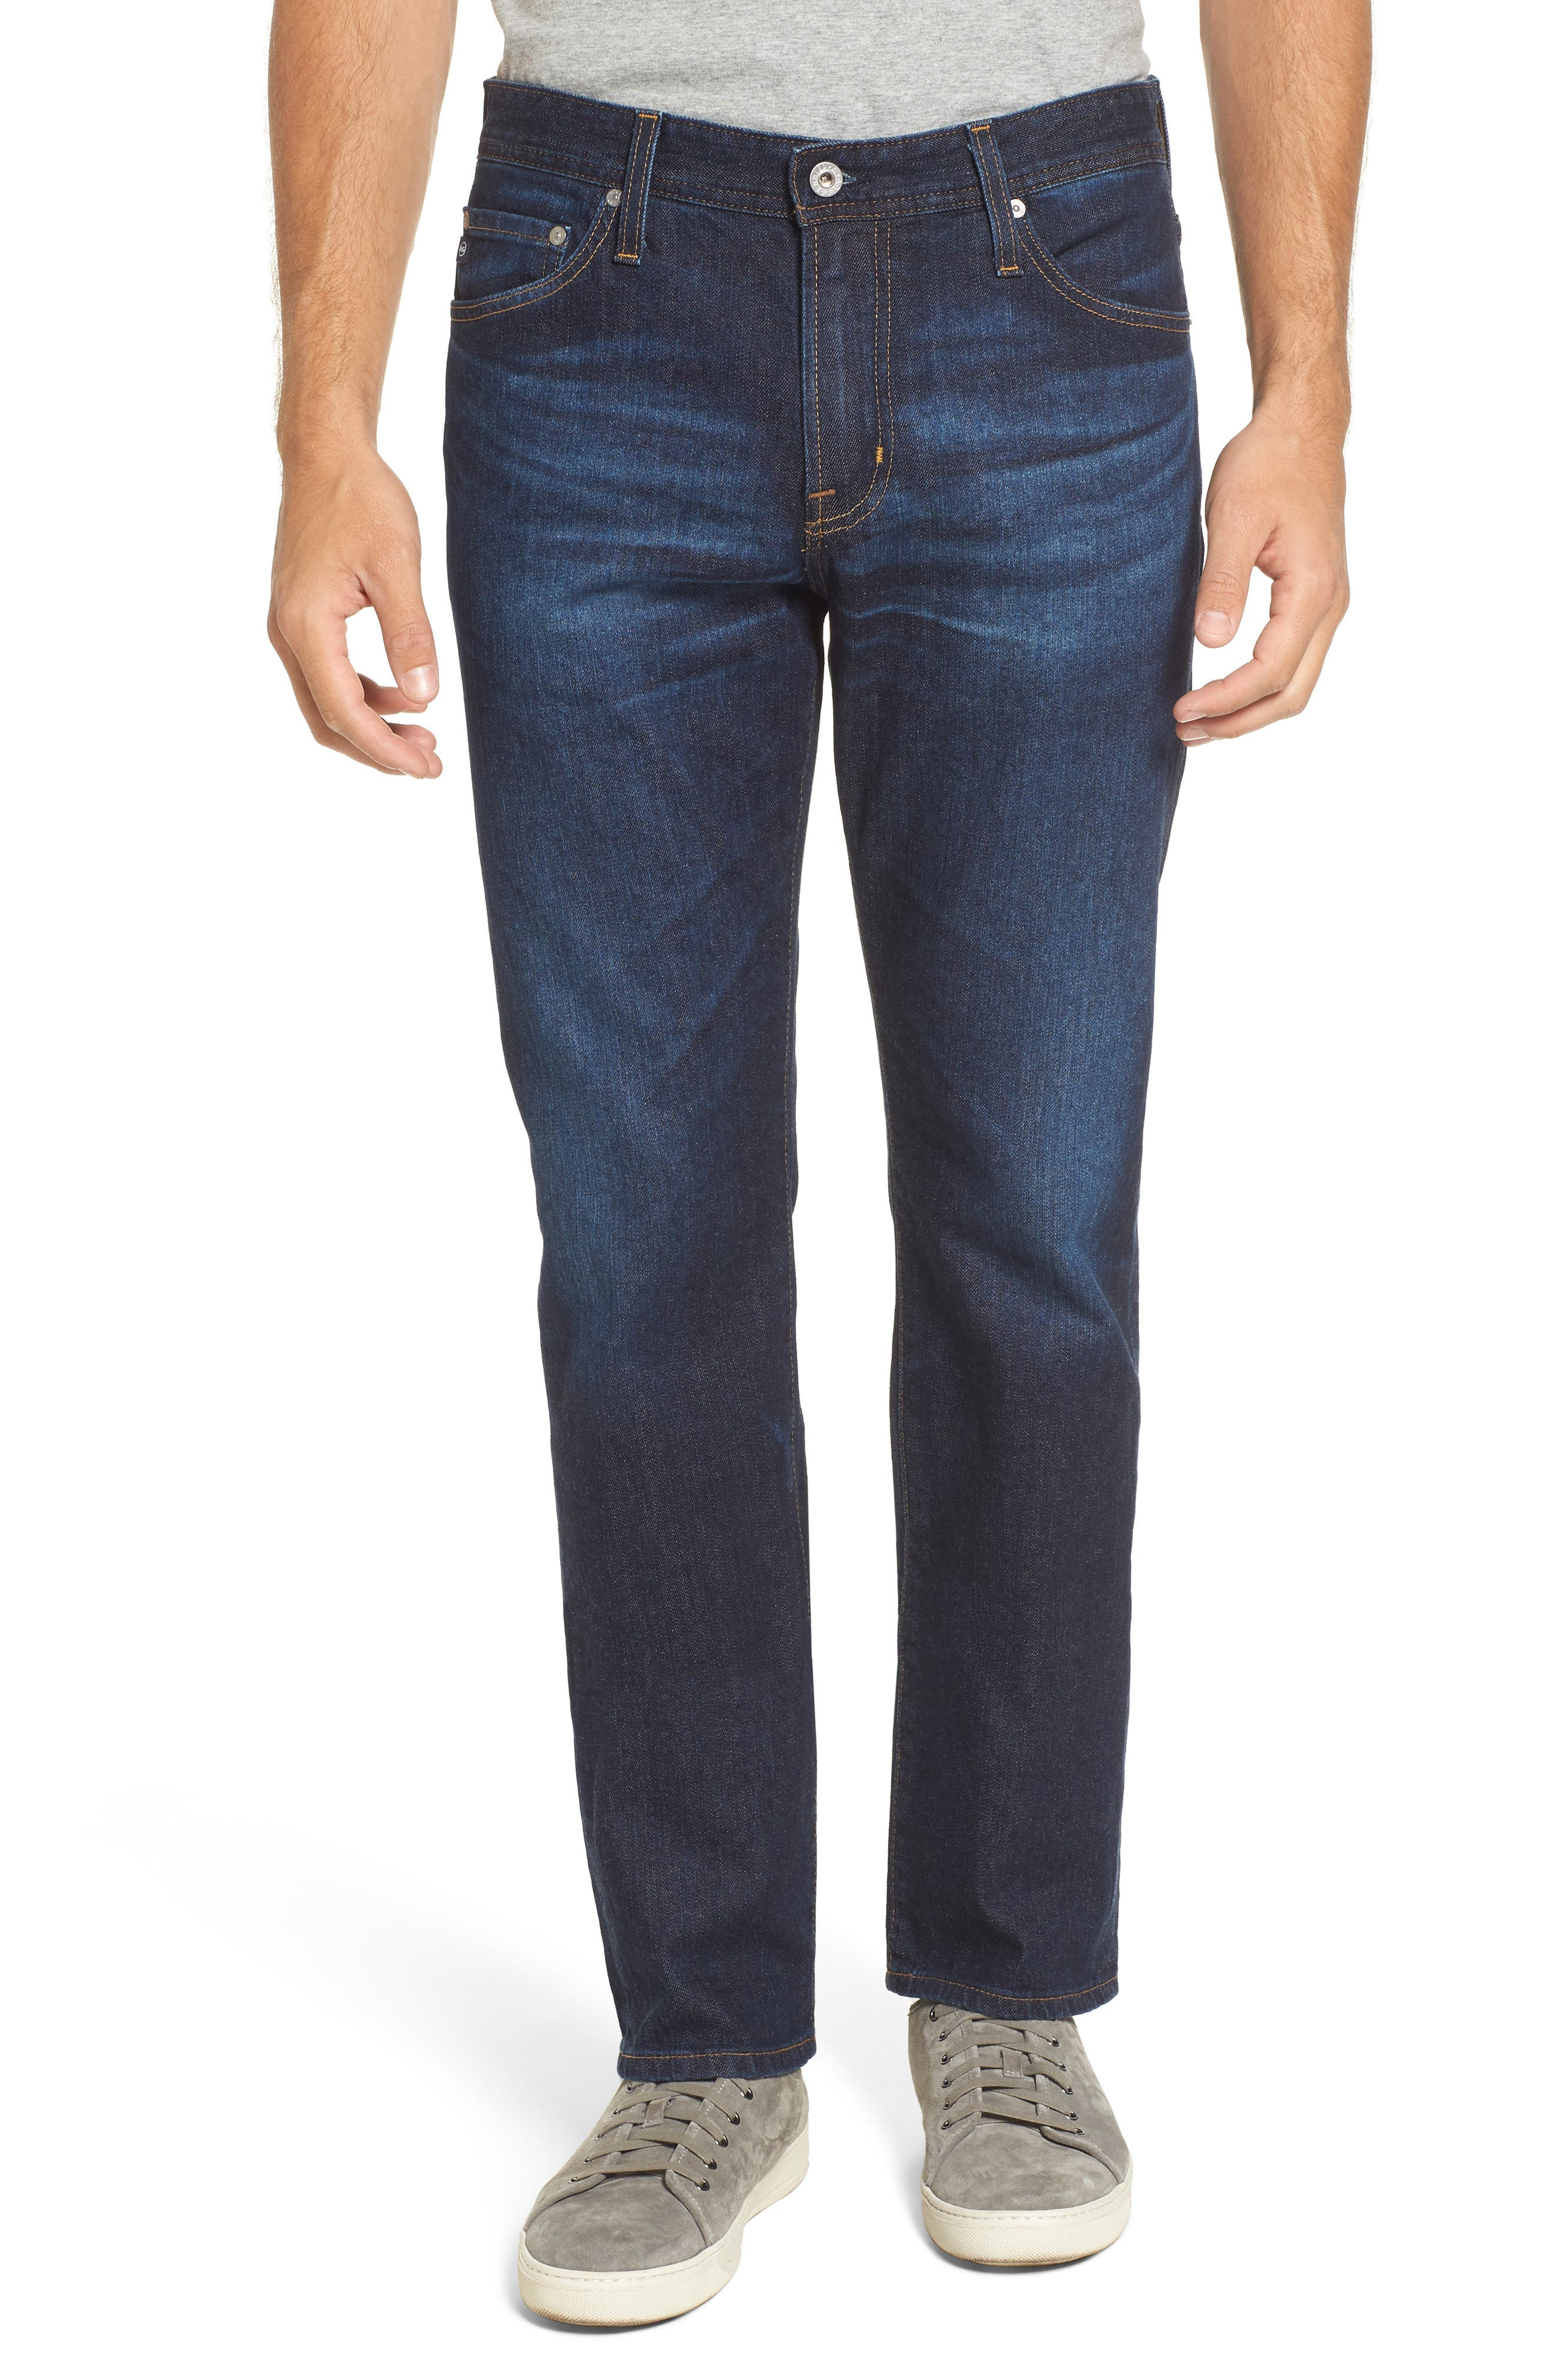 Everett Slim Straight Leg Jeans,                         Main,                         color, Obscure